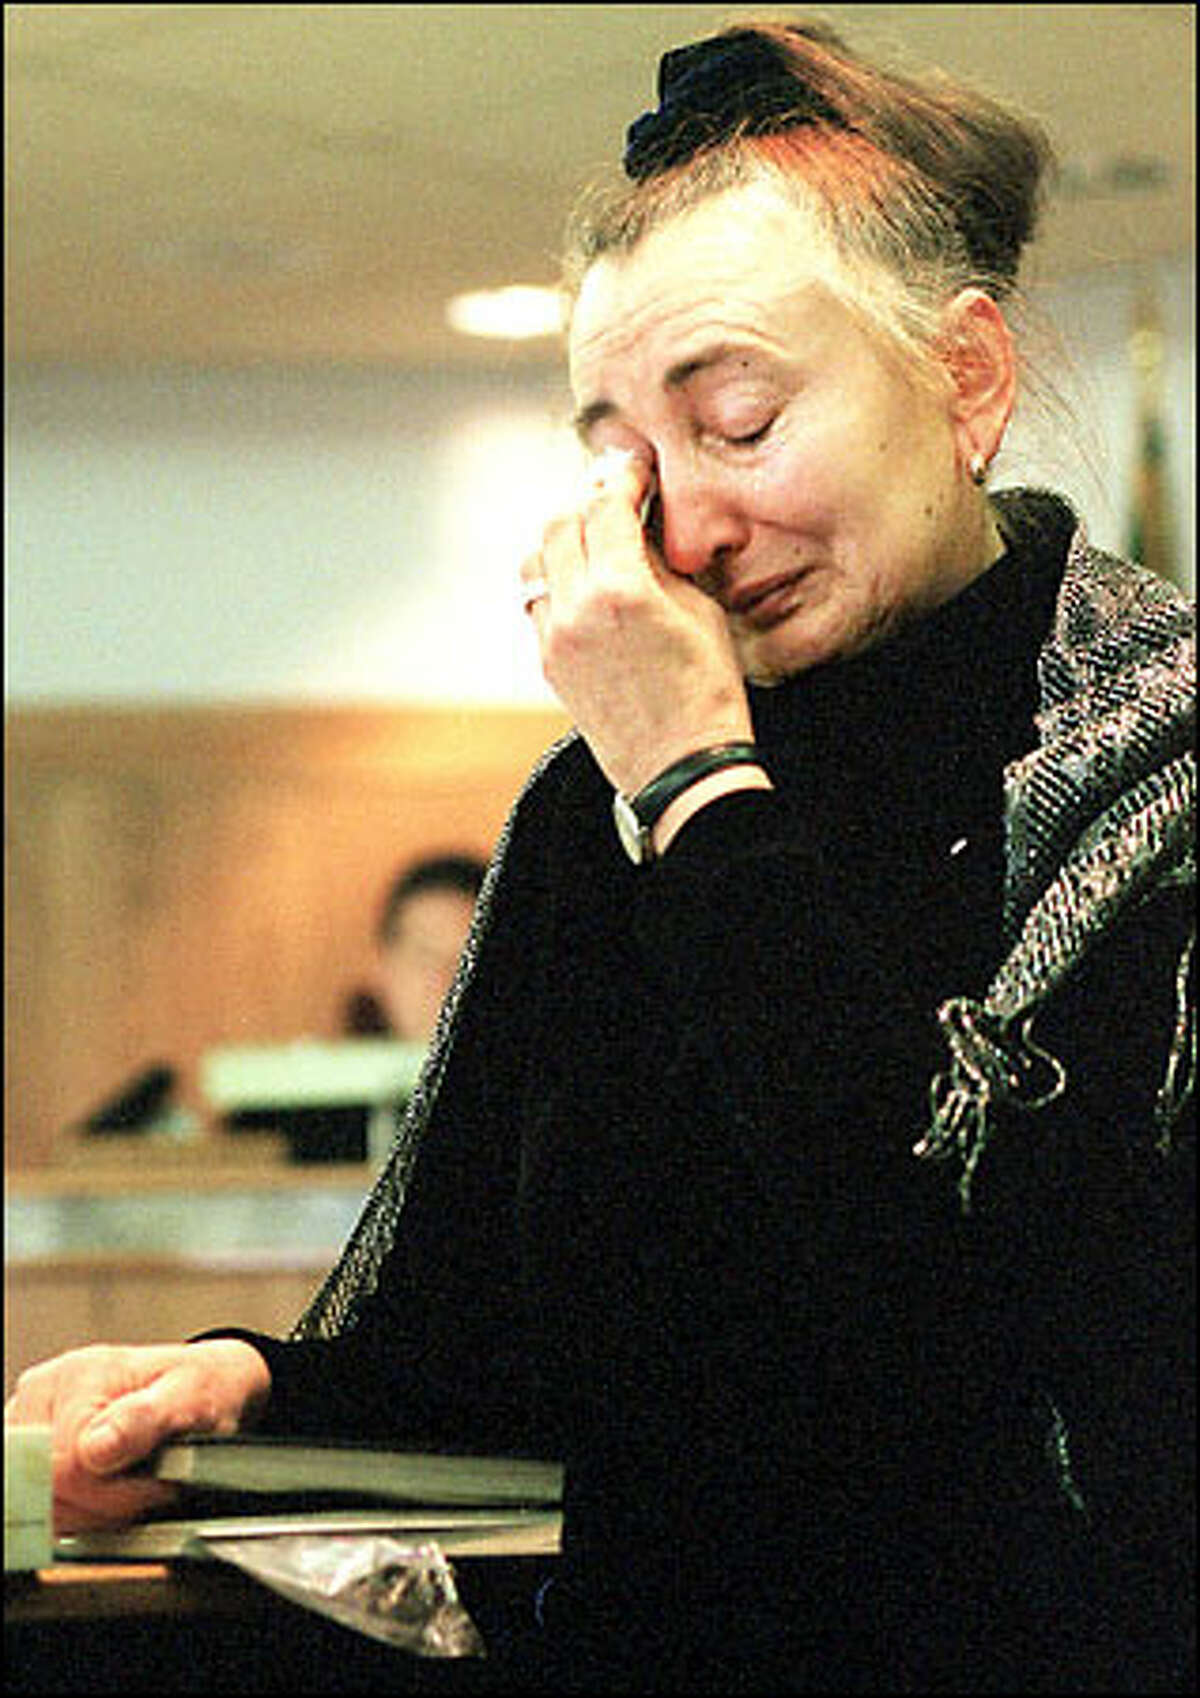 Alevtina Solovieva is overcome during the sentencing of King for the murder of her daughter.